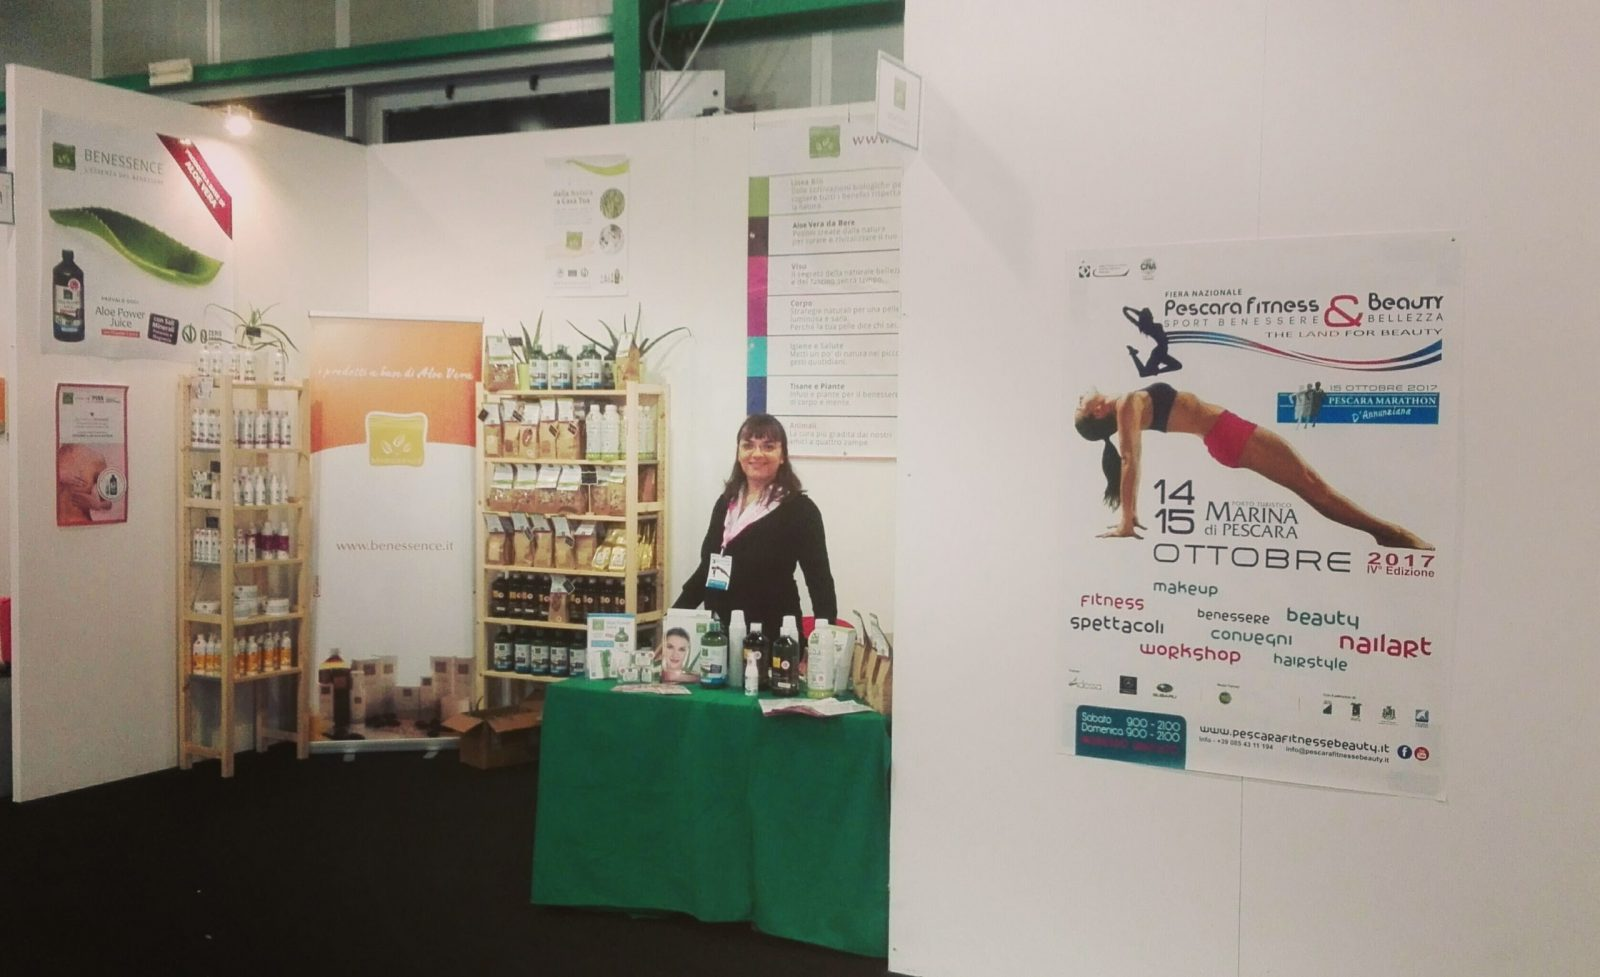 Benessence al Pescara Fitness & Beauty 2017